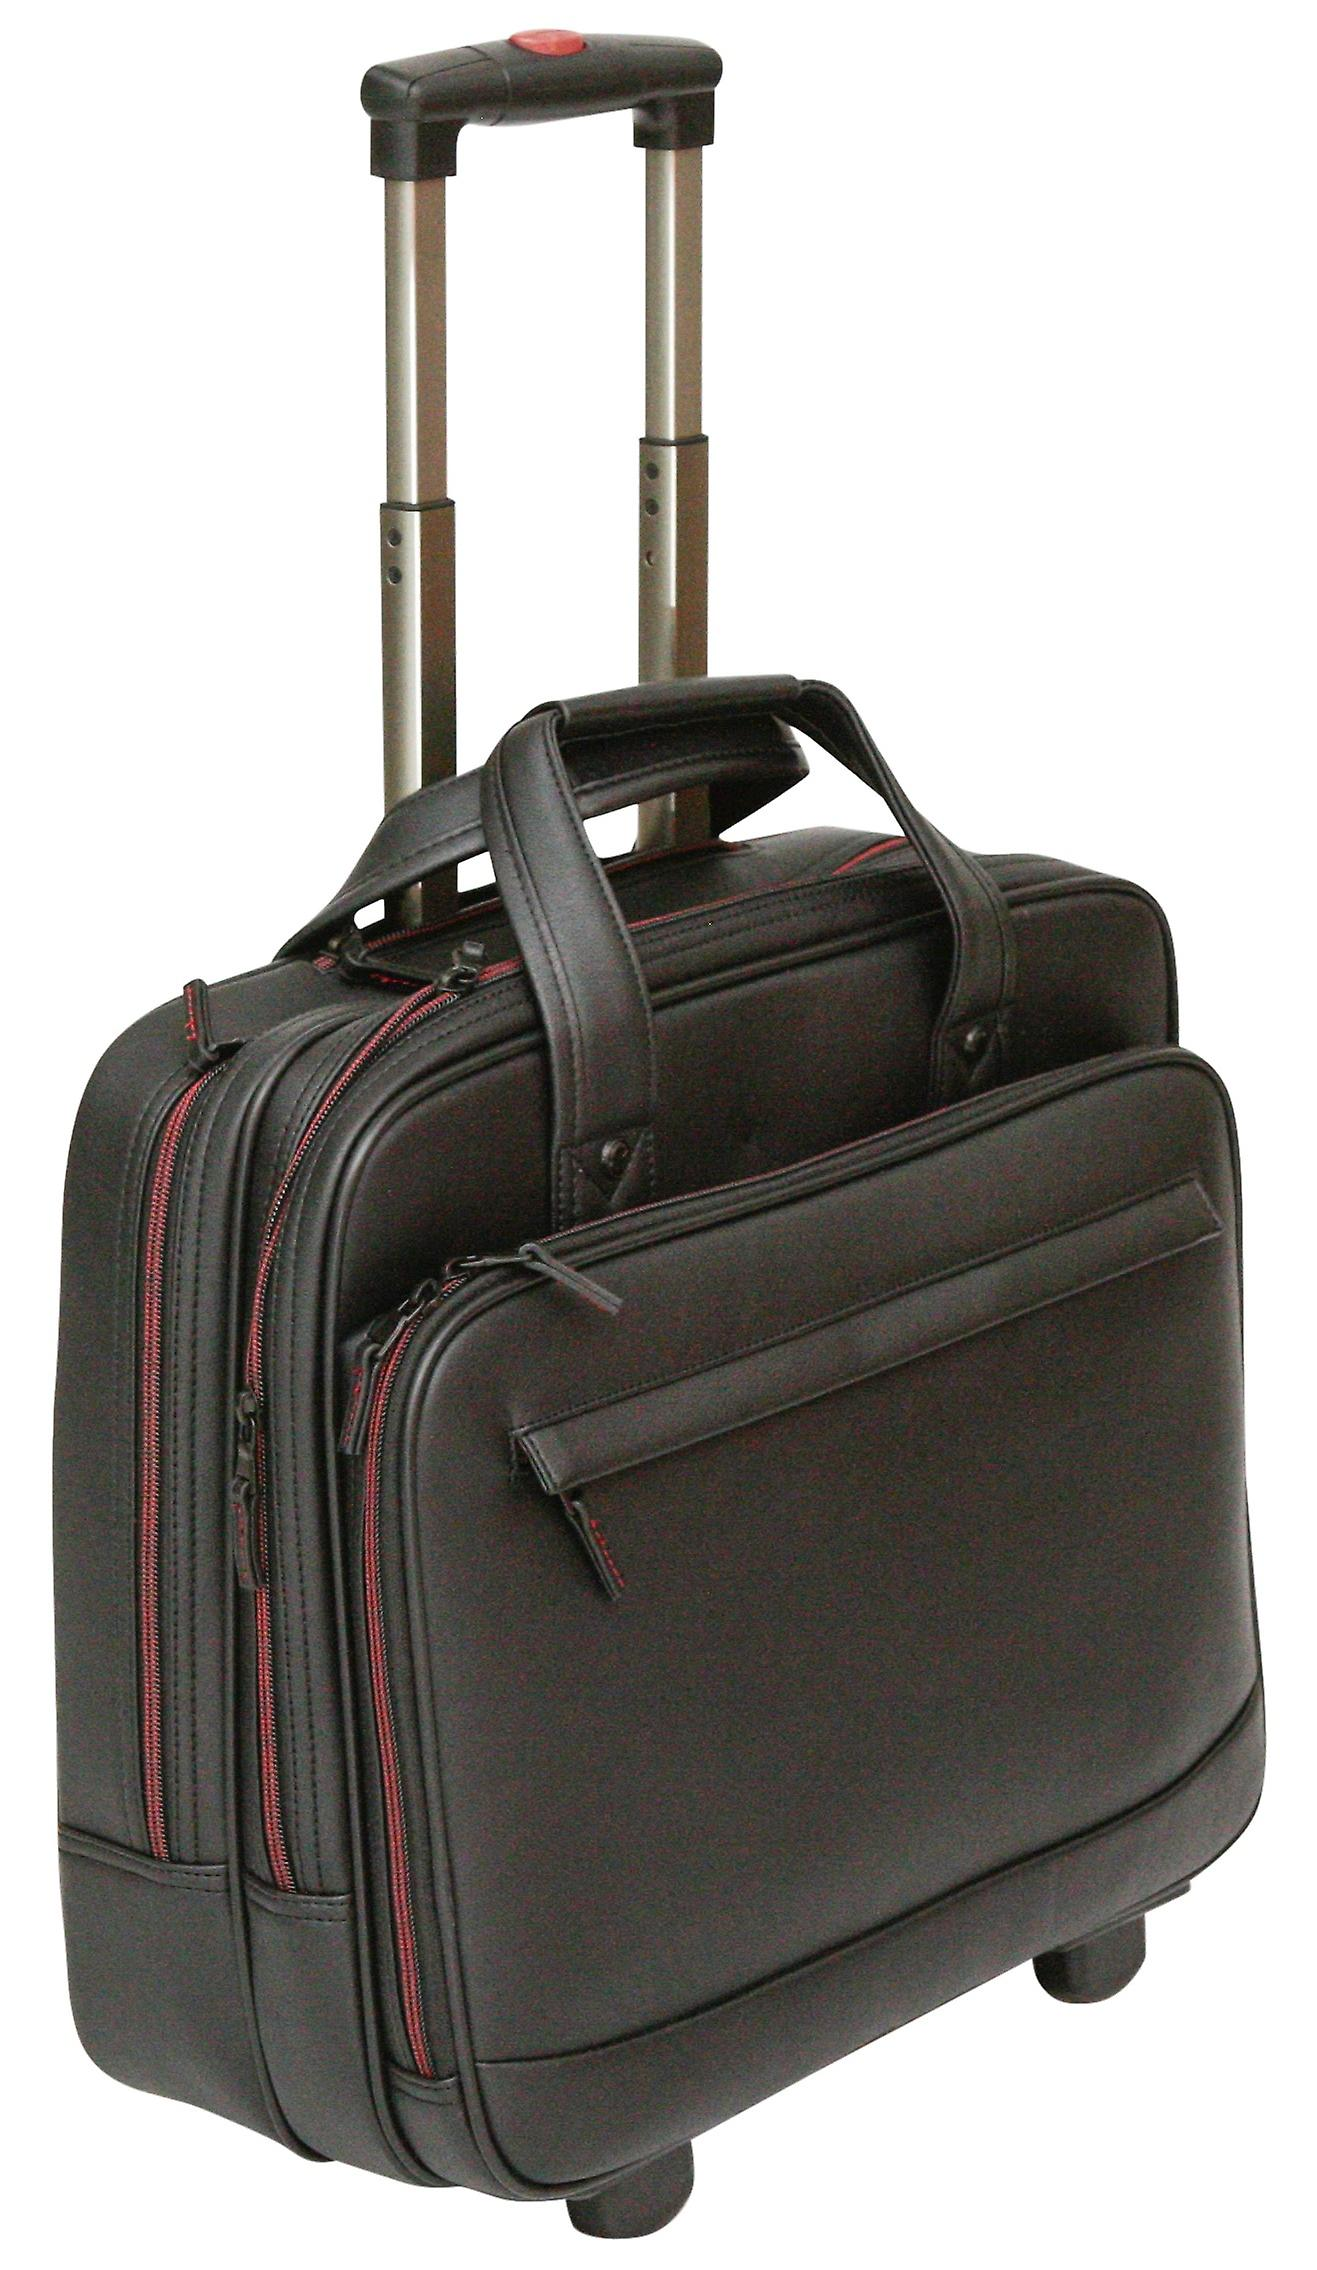 Tassia Wheeled Laptop Case Fits Up To 15.6